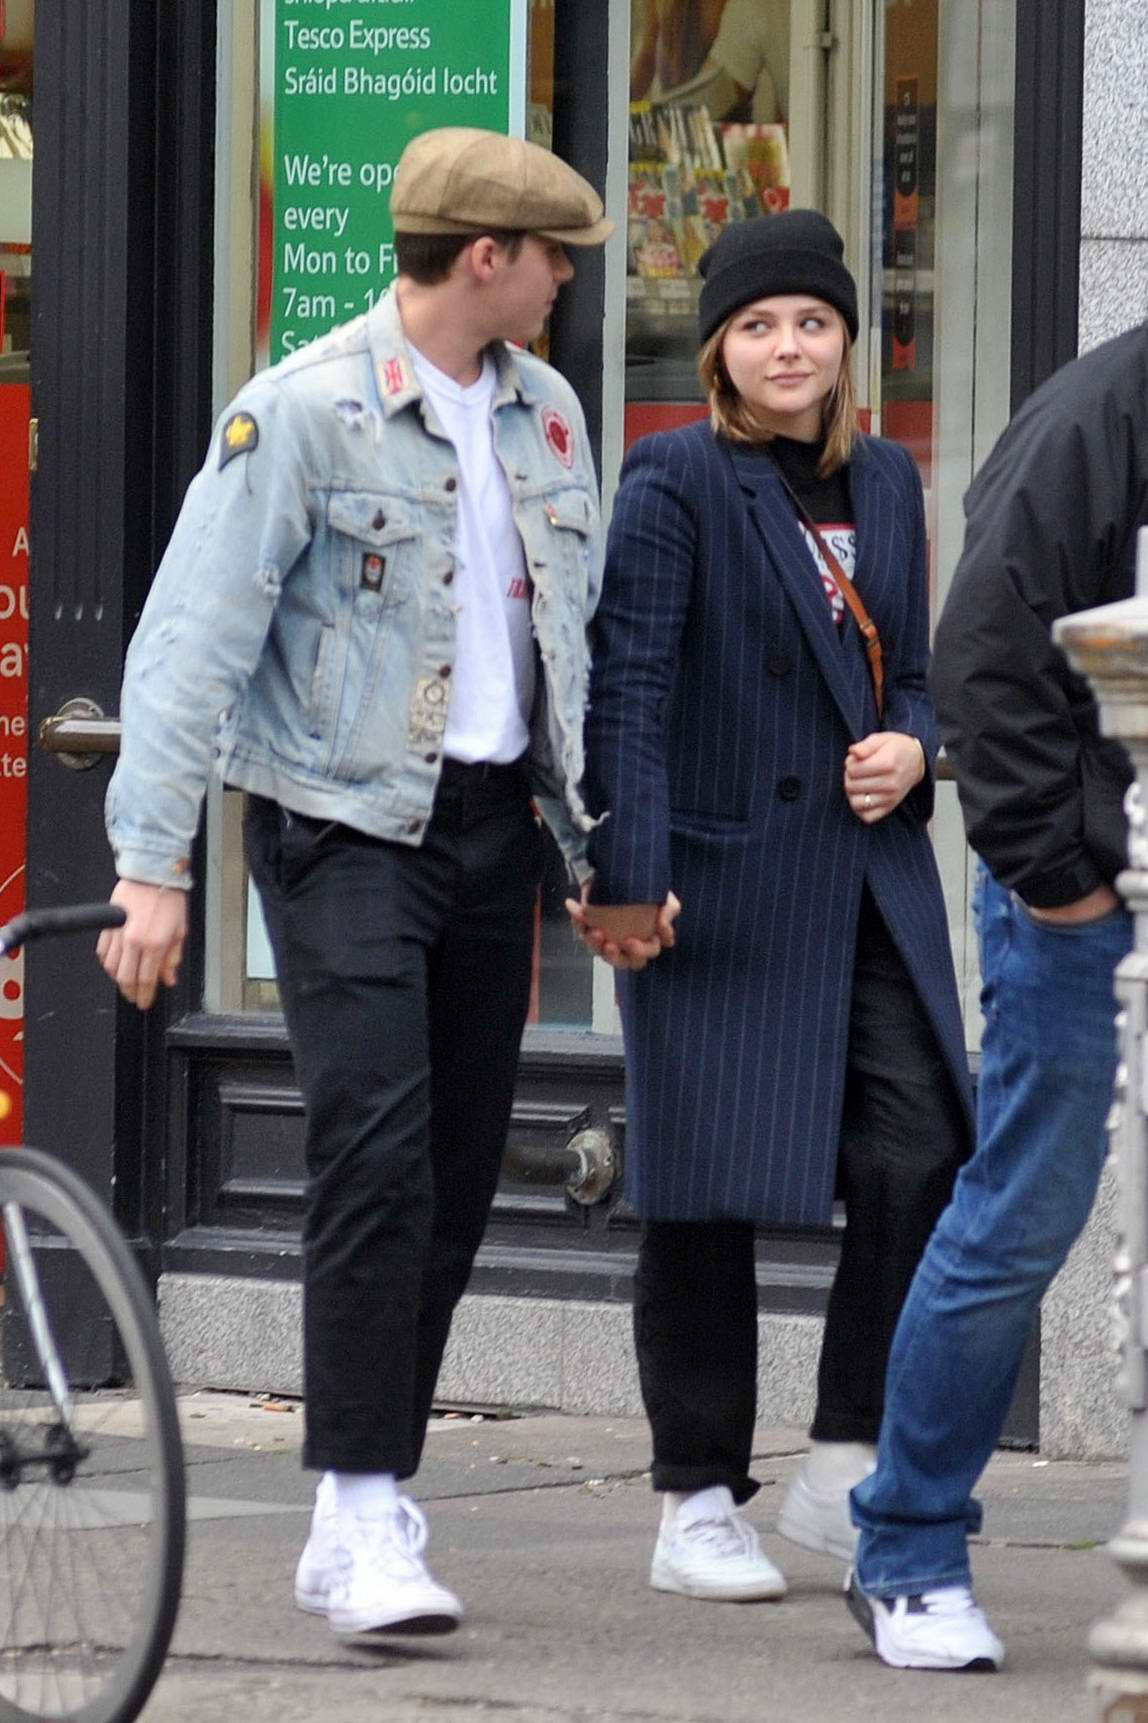 Chloe Grace Moretz and Brooklyn Beckham hold hands as they leave a Tesco Store in Dublin, Ireland